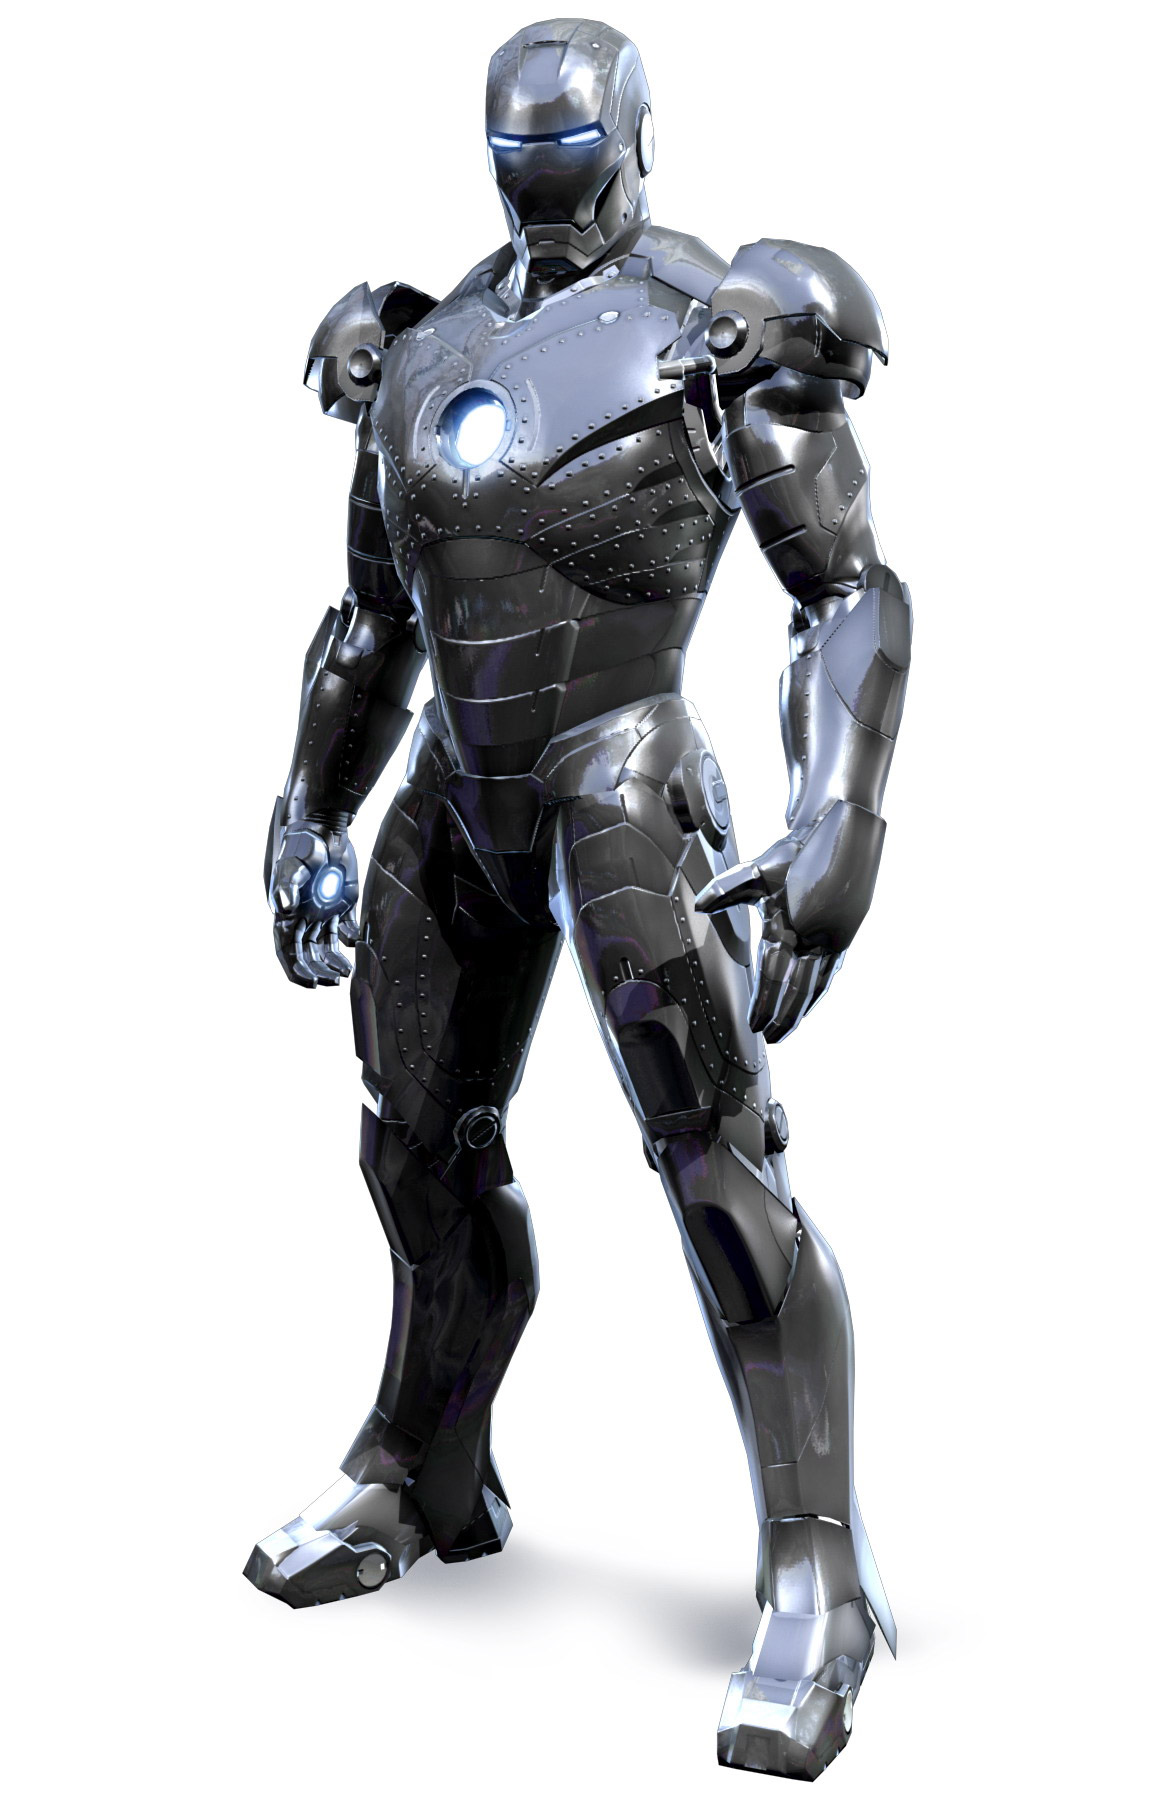 Iron Man 2 Movie Wallpapers HQ Images Download 1154x1800